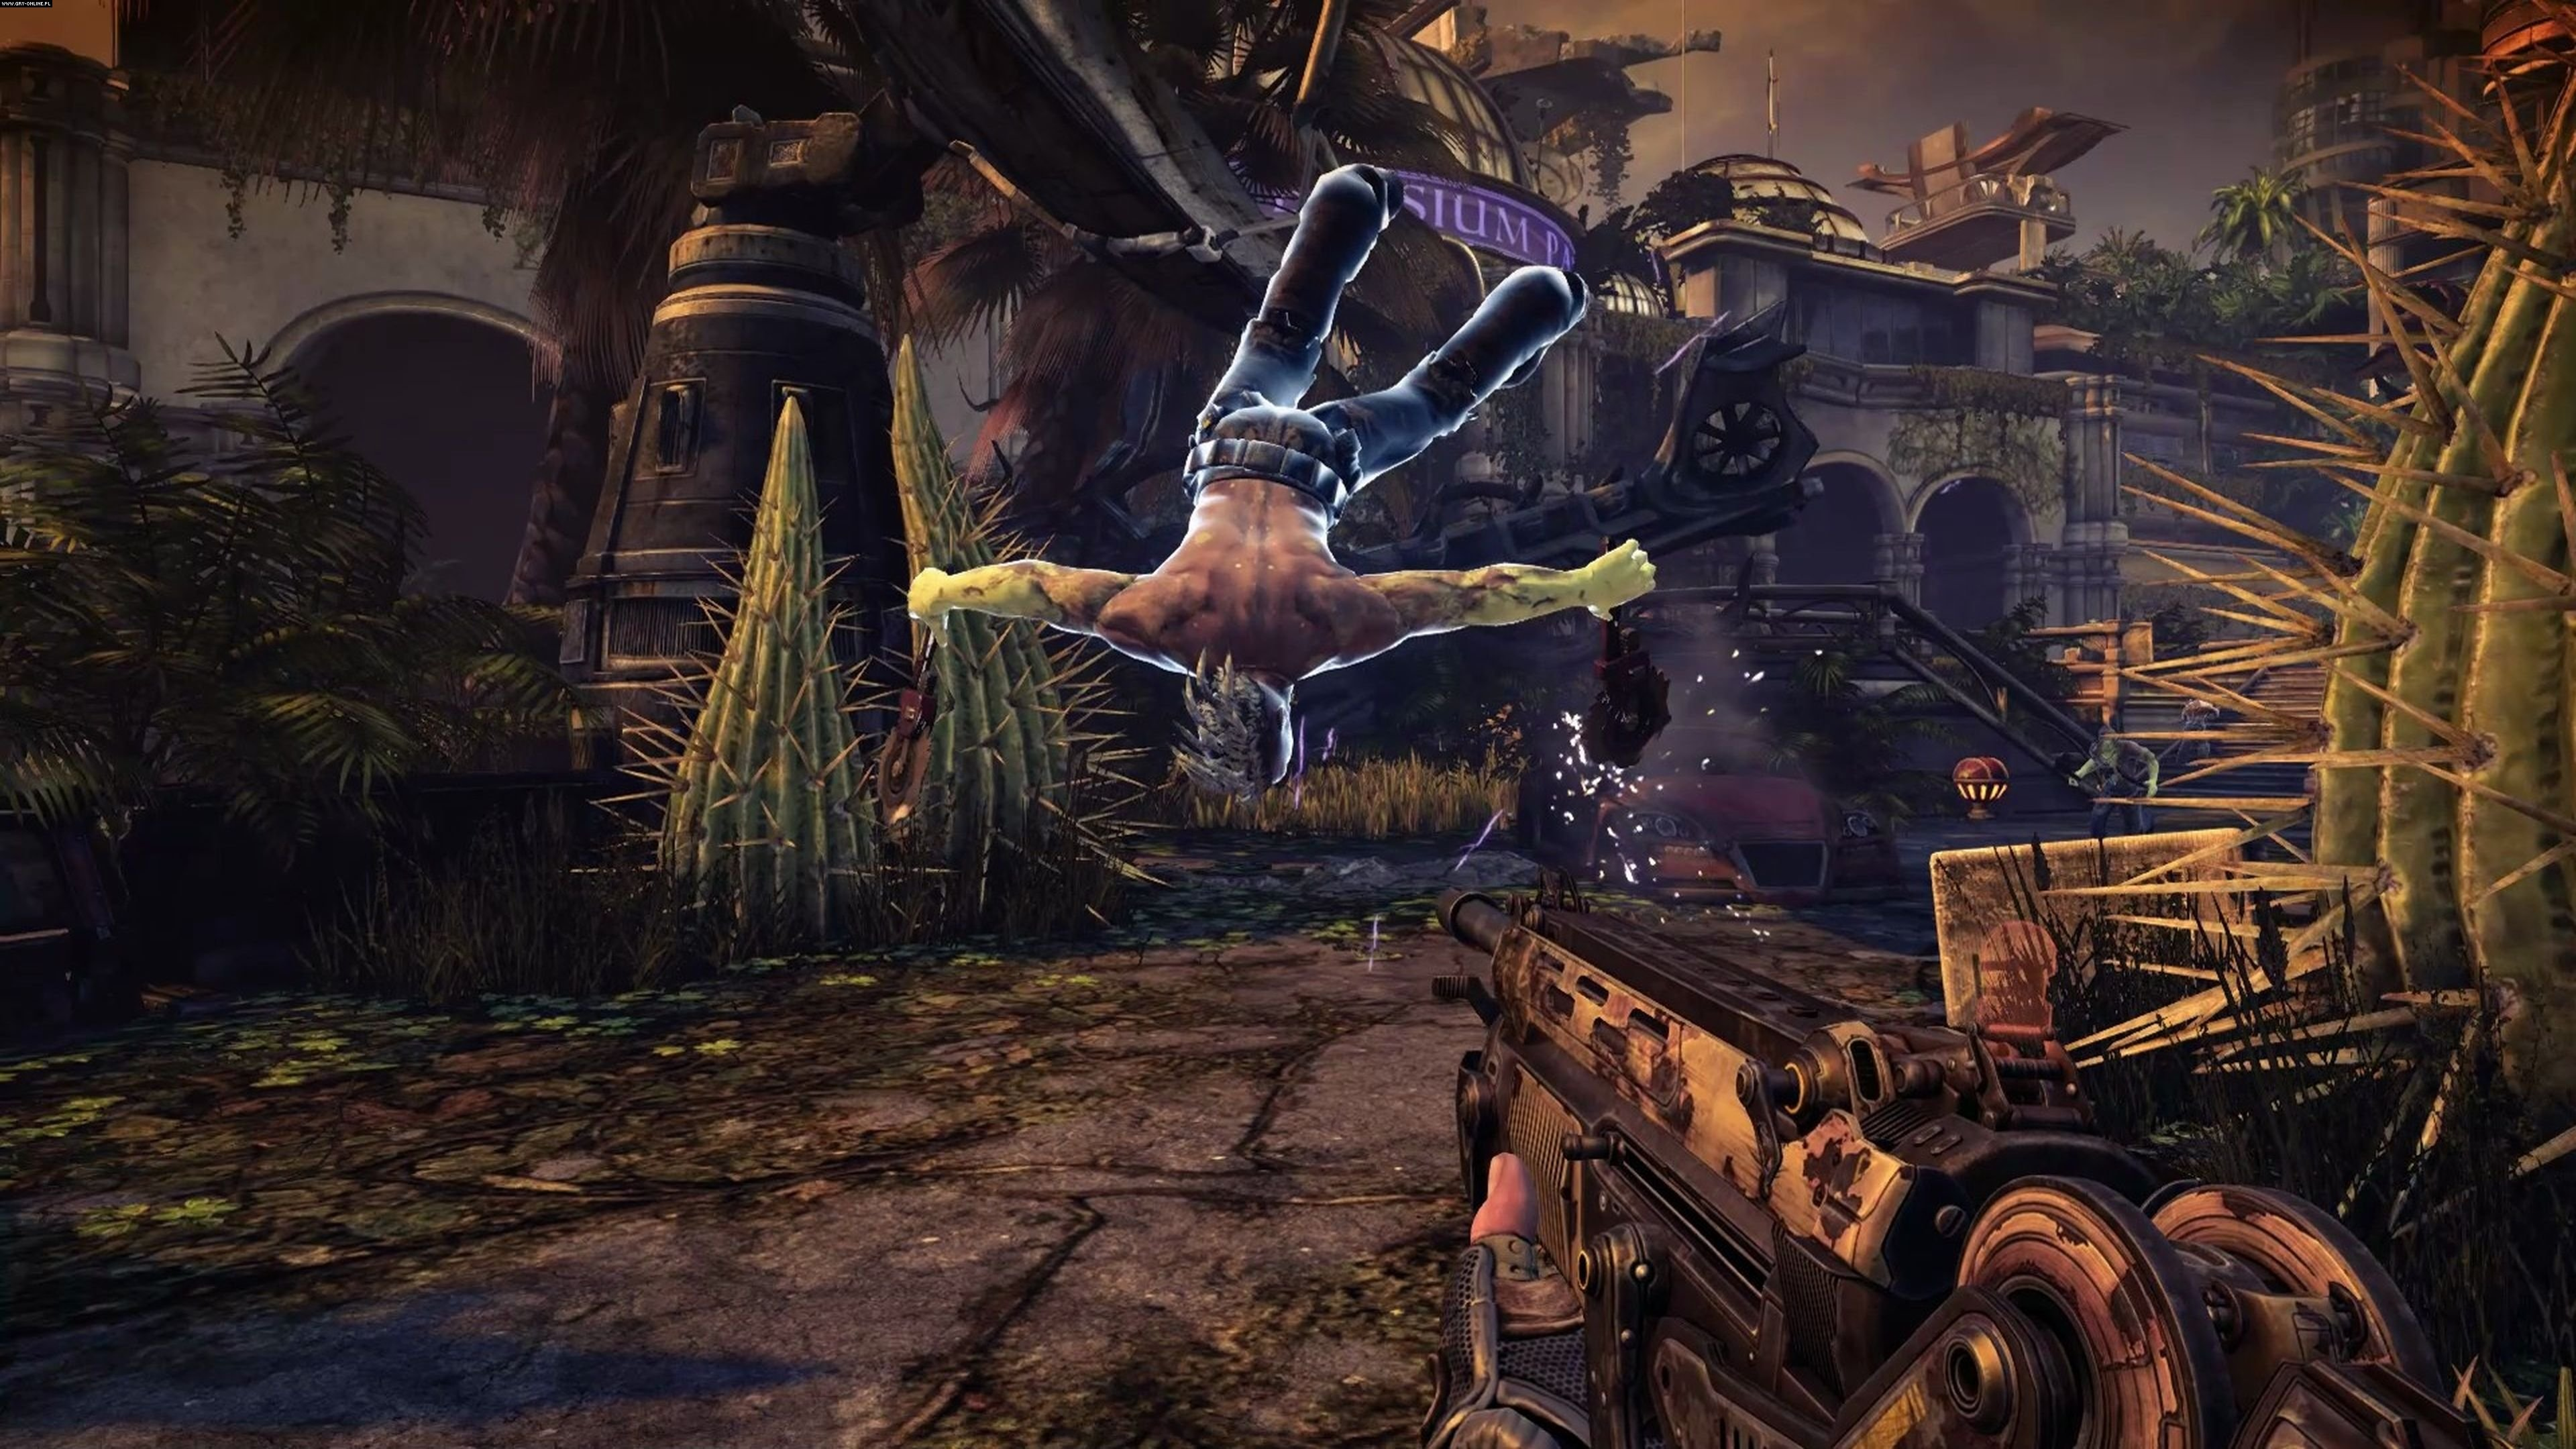 Bulletstorm: Full Clip Edition PC, PS4 Games Image 7/27, People Can Fly, Gearbox Publishing